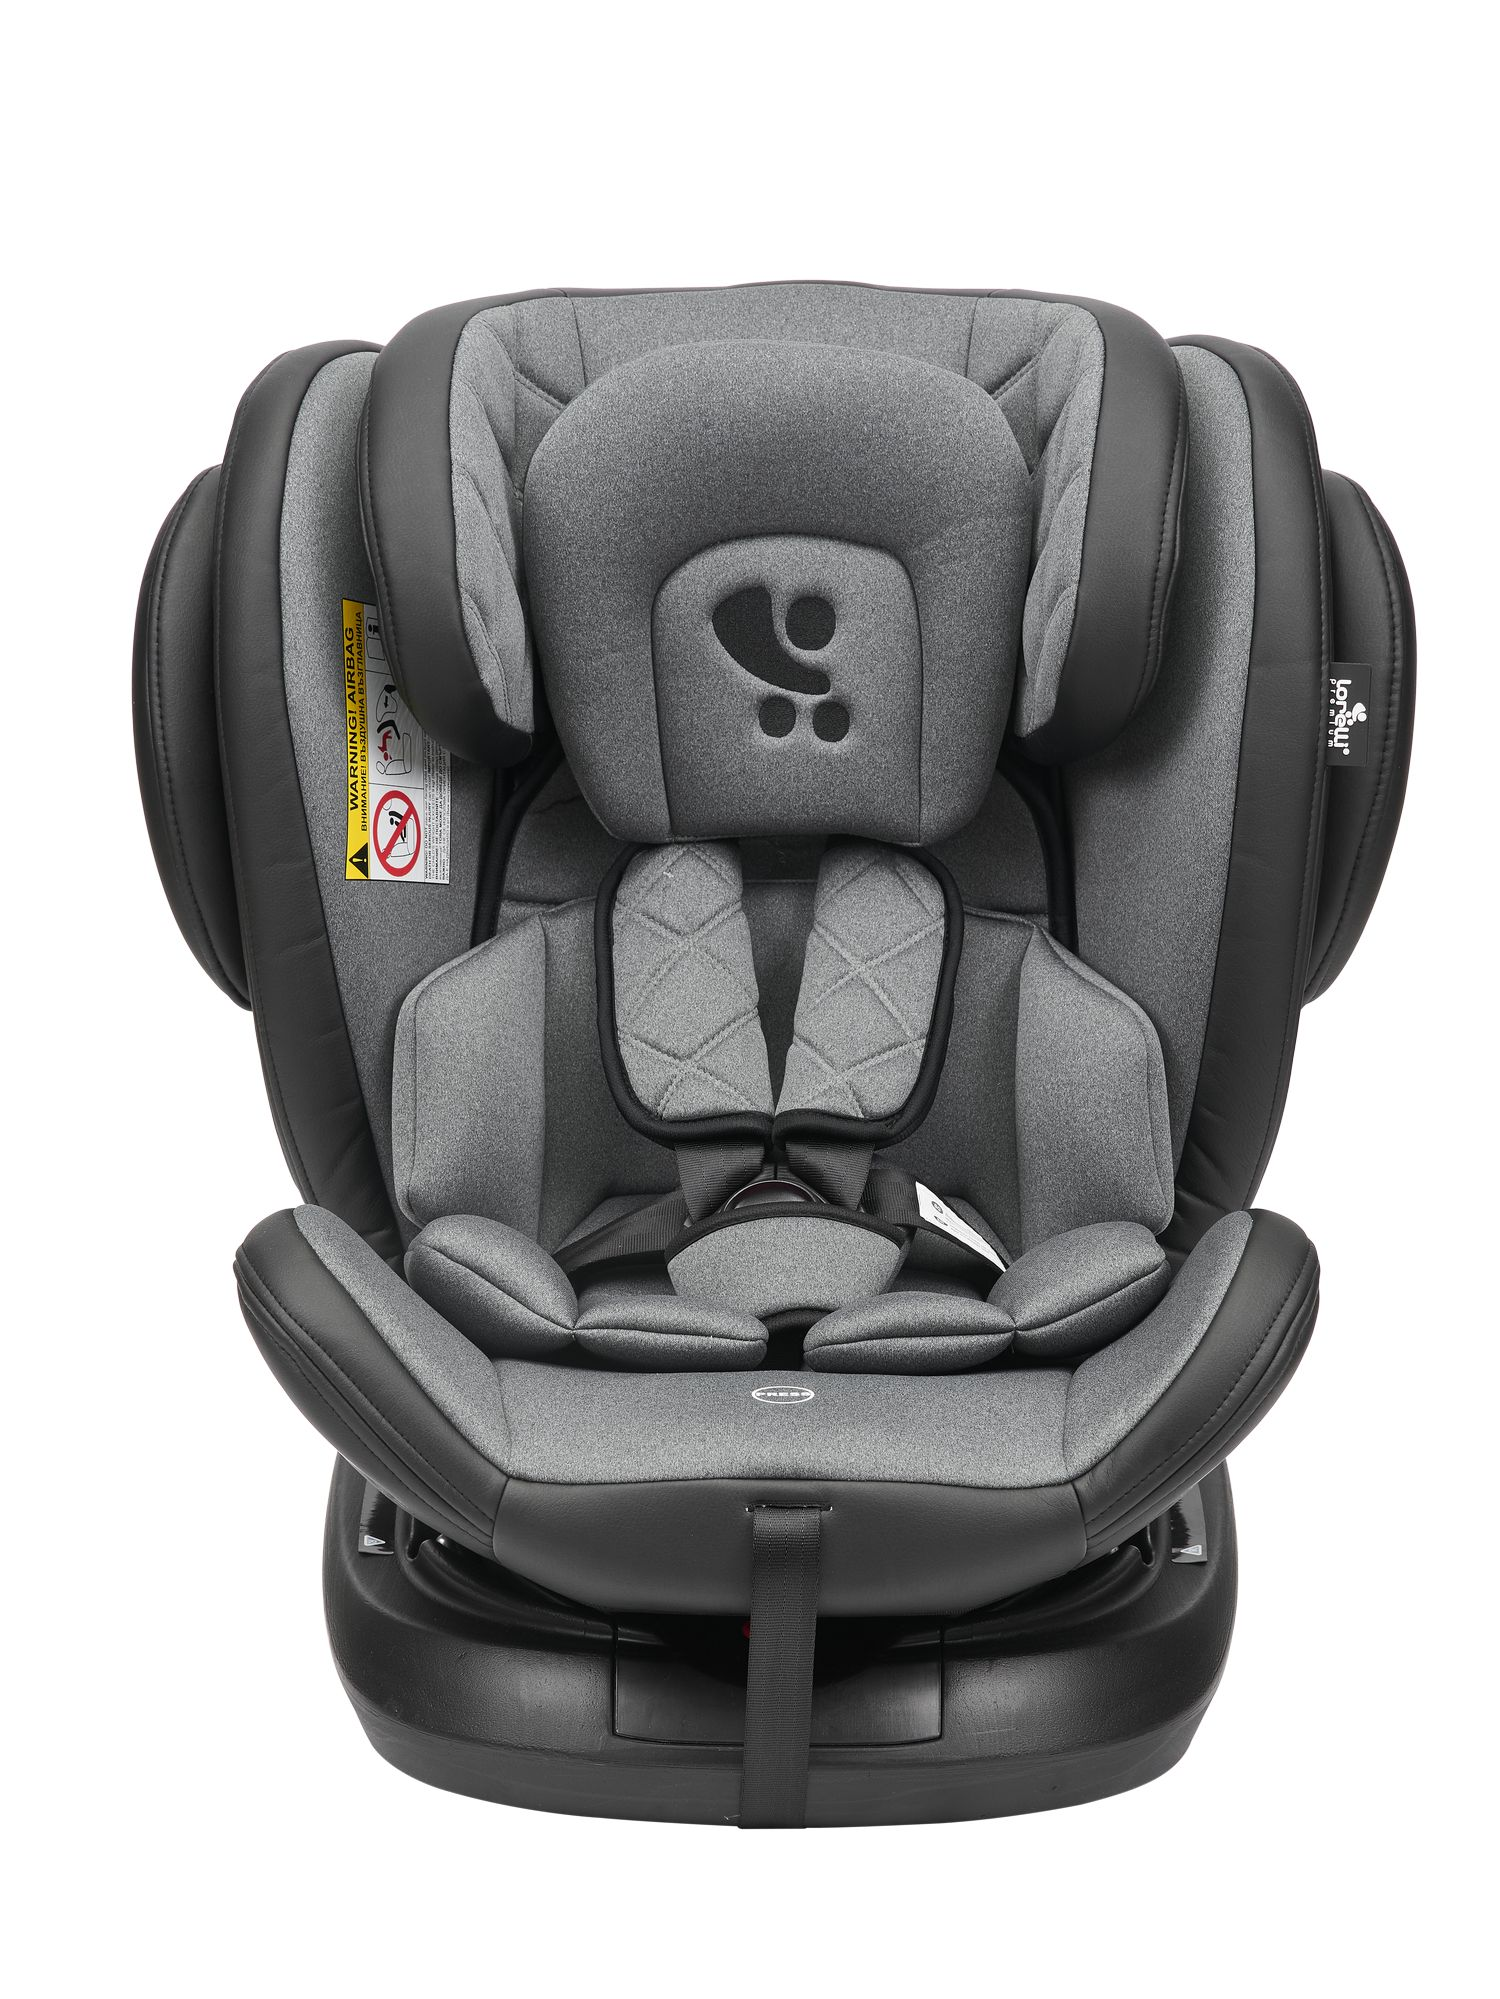 Автокресло LORELLI Aviator Isofix Black Dark Grey